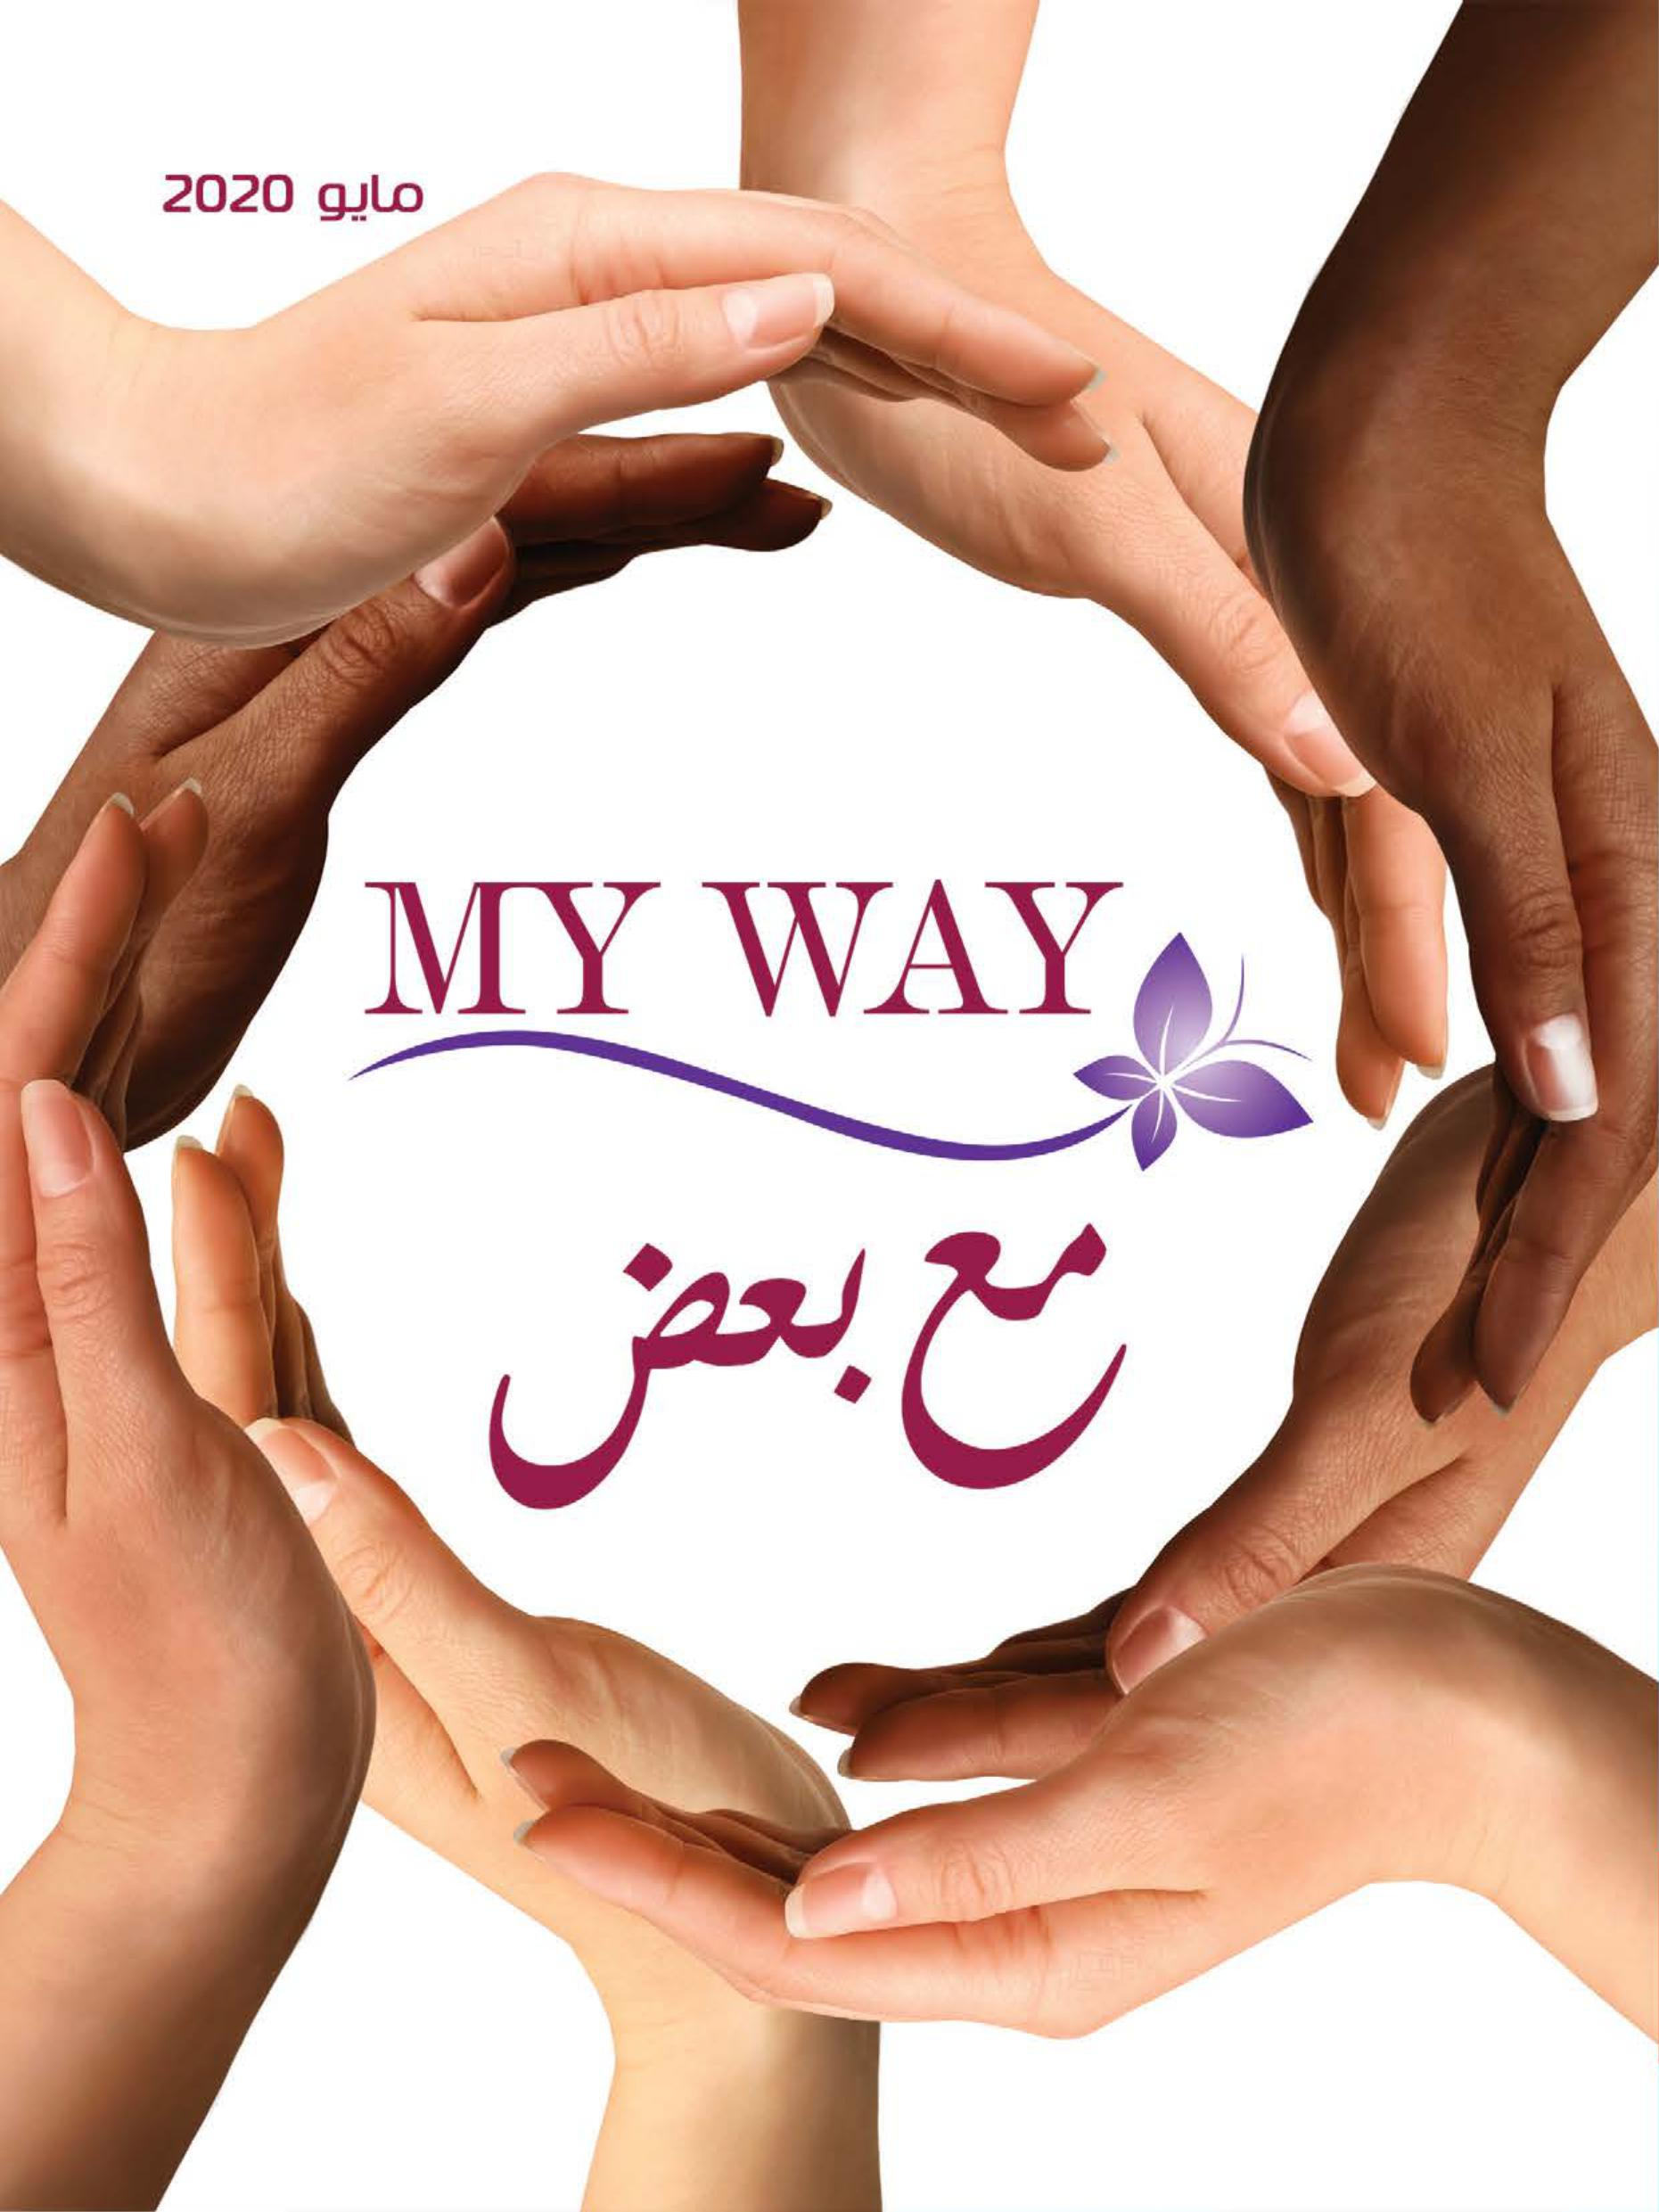 my way may 2020